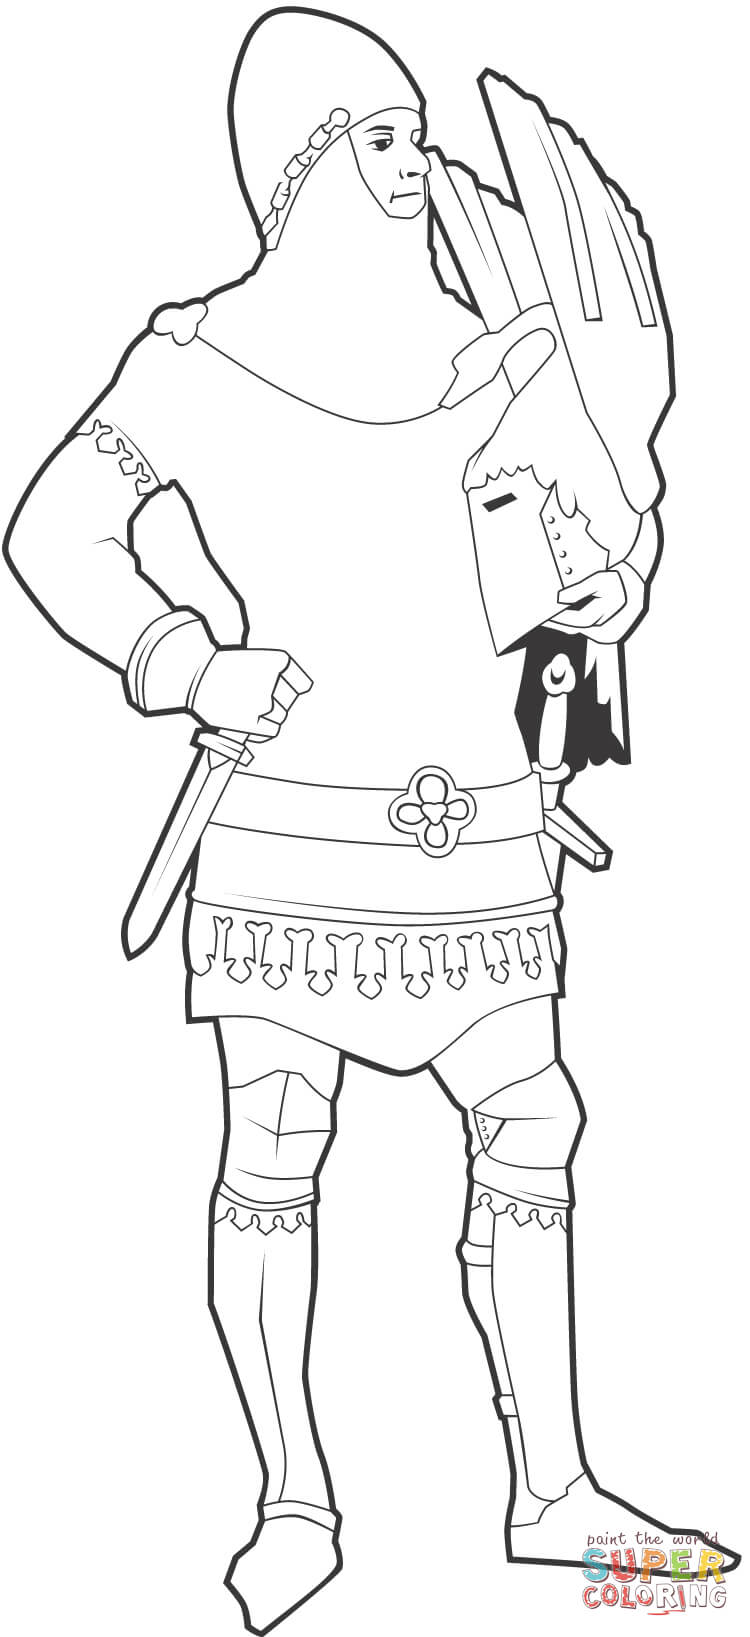 knight of england coloring page  free printable coloring